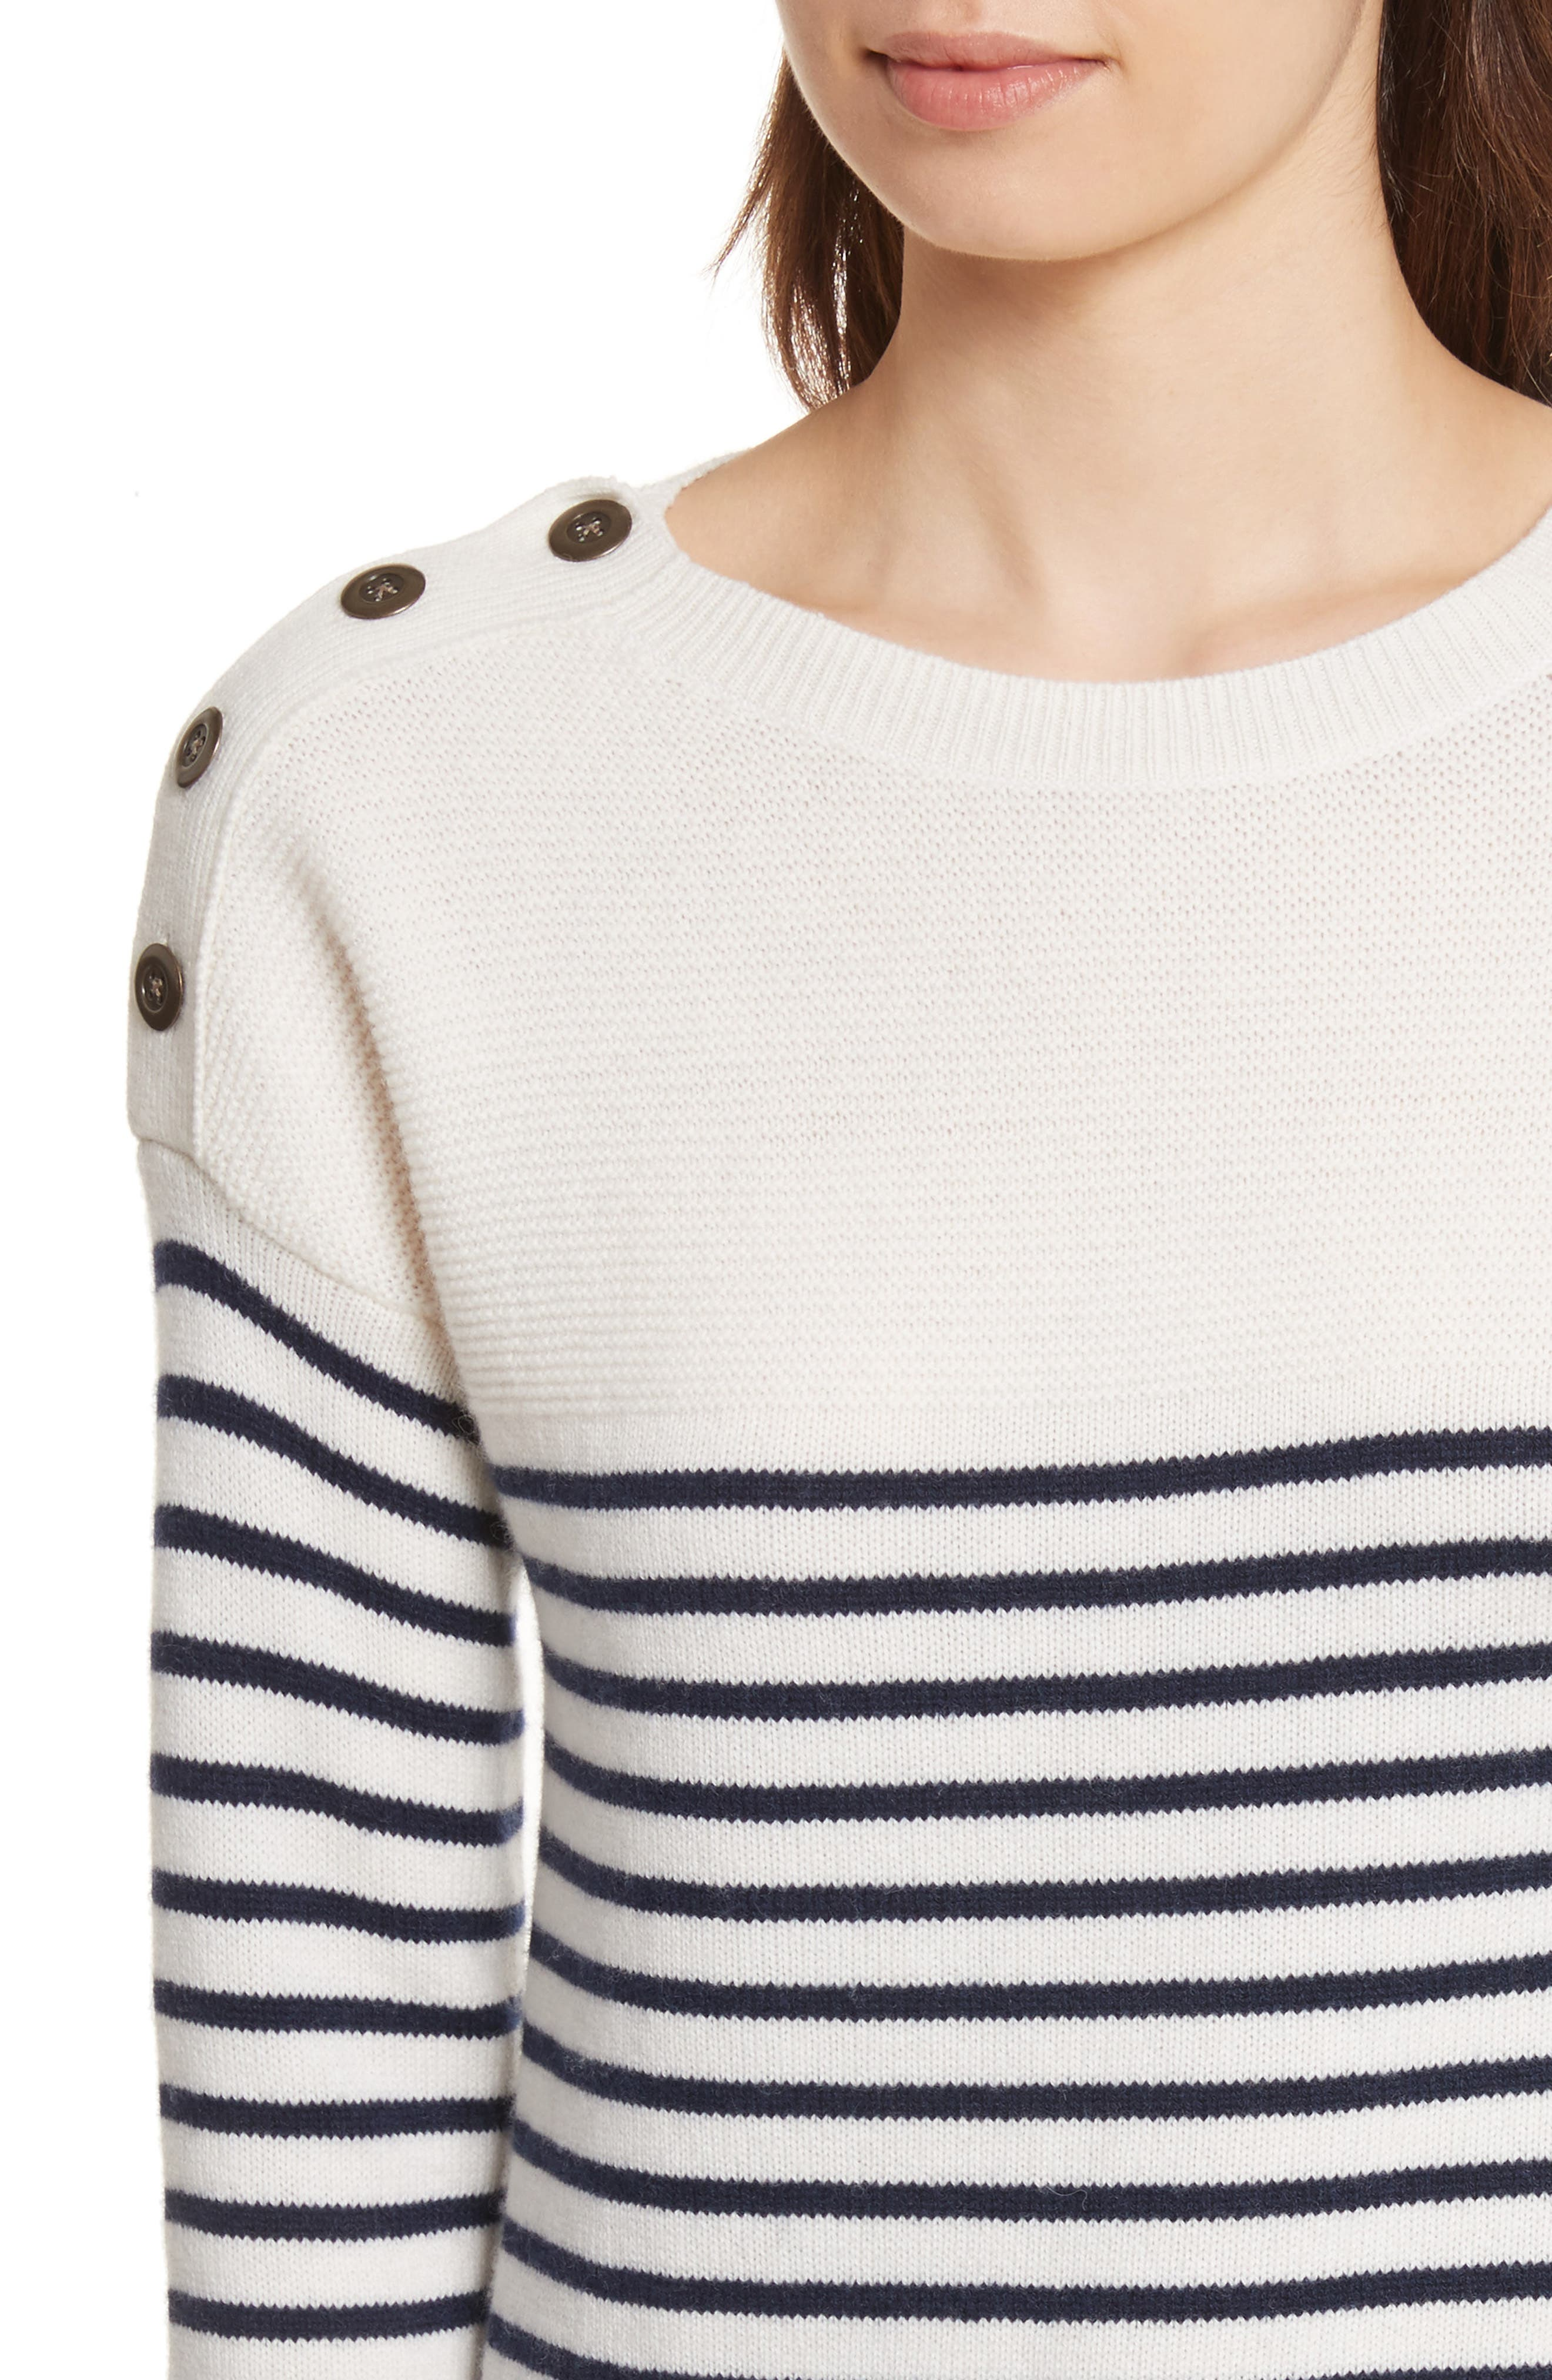 Aefre Woven Trim Wool & Cashmere Sweater,                             Alternate thumbnail 4, color,                             029